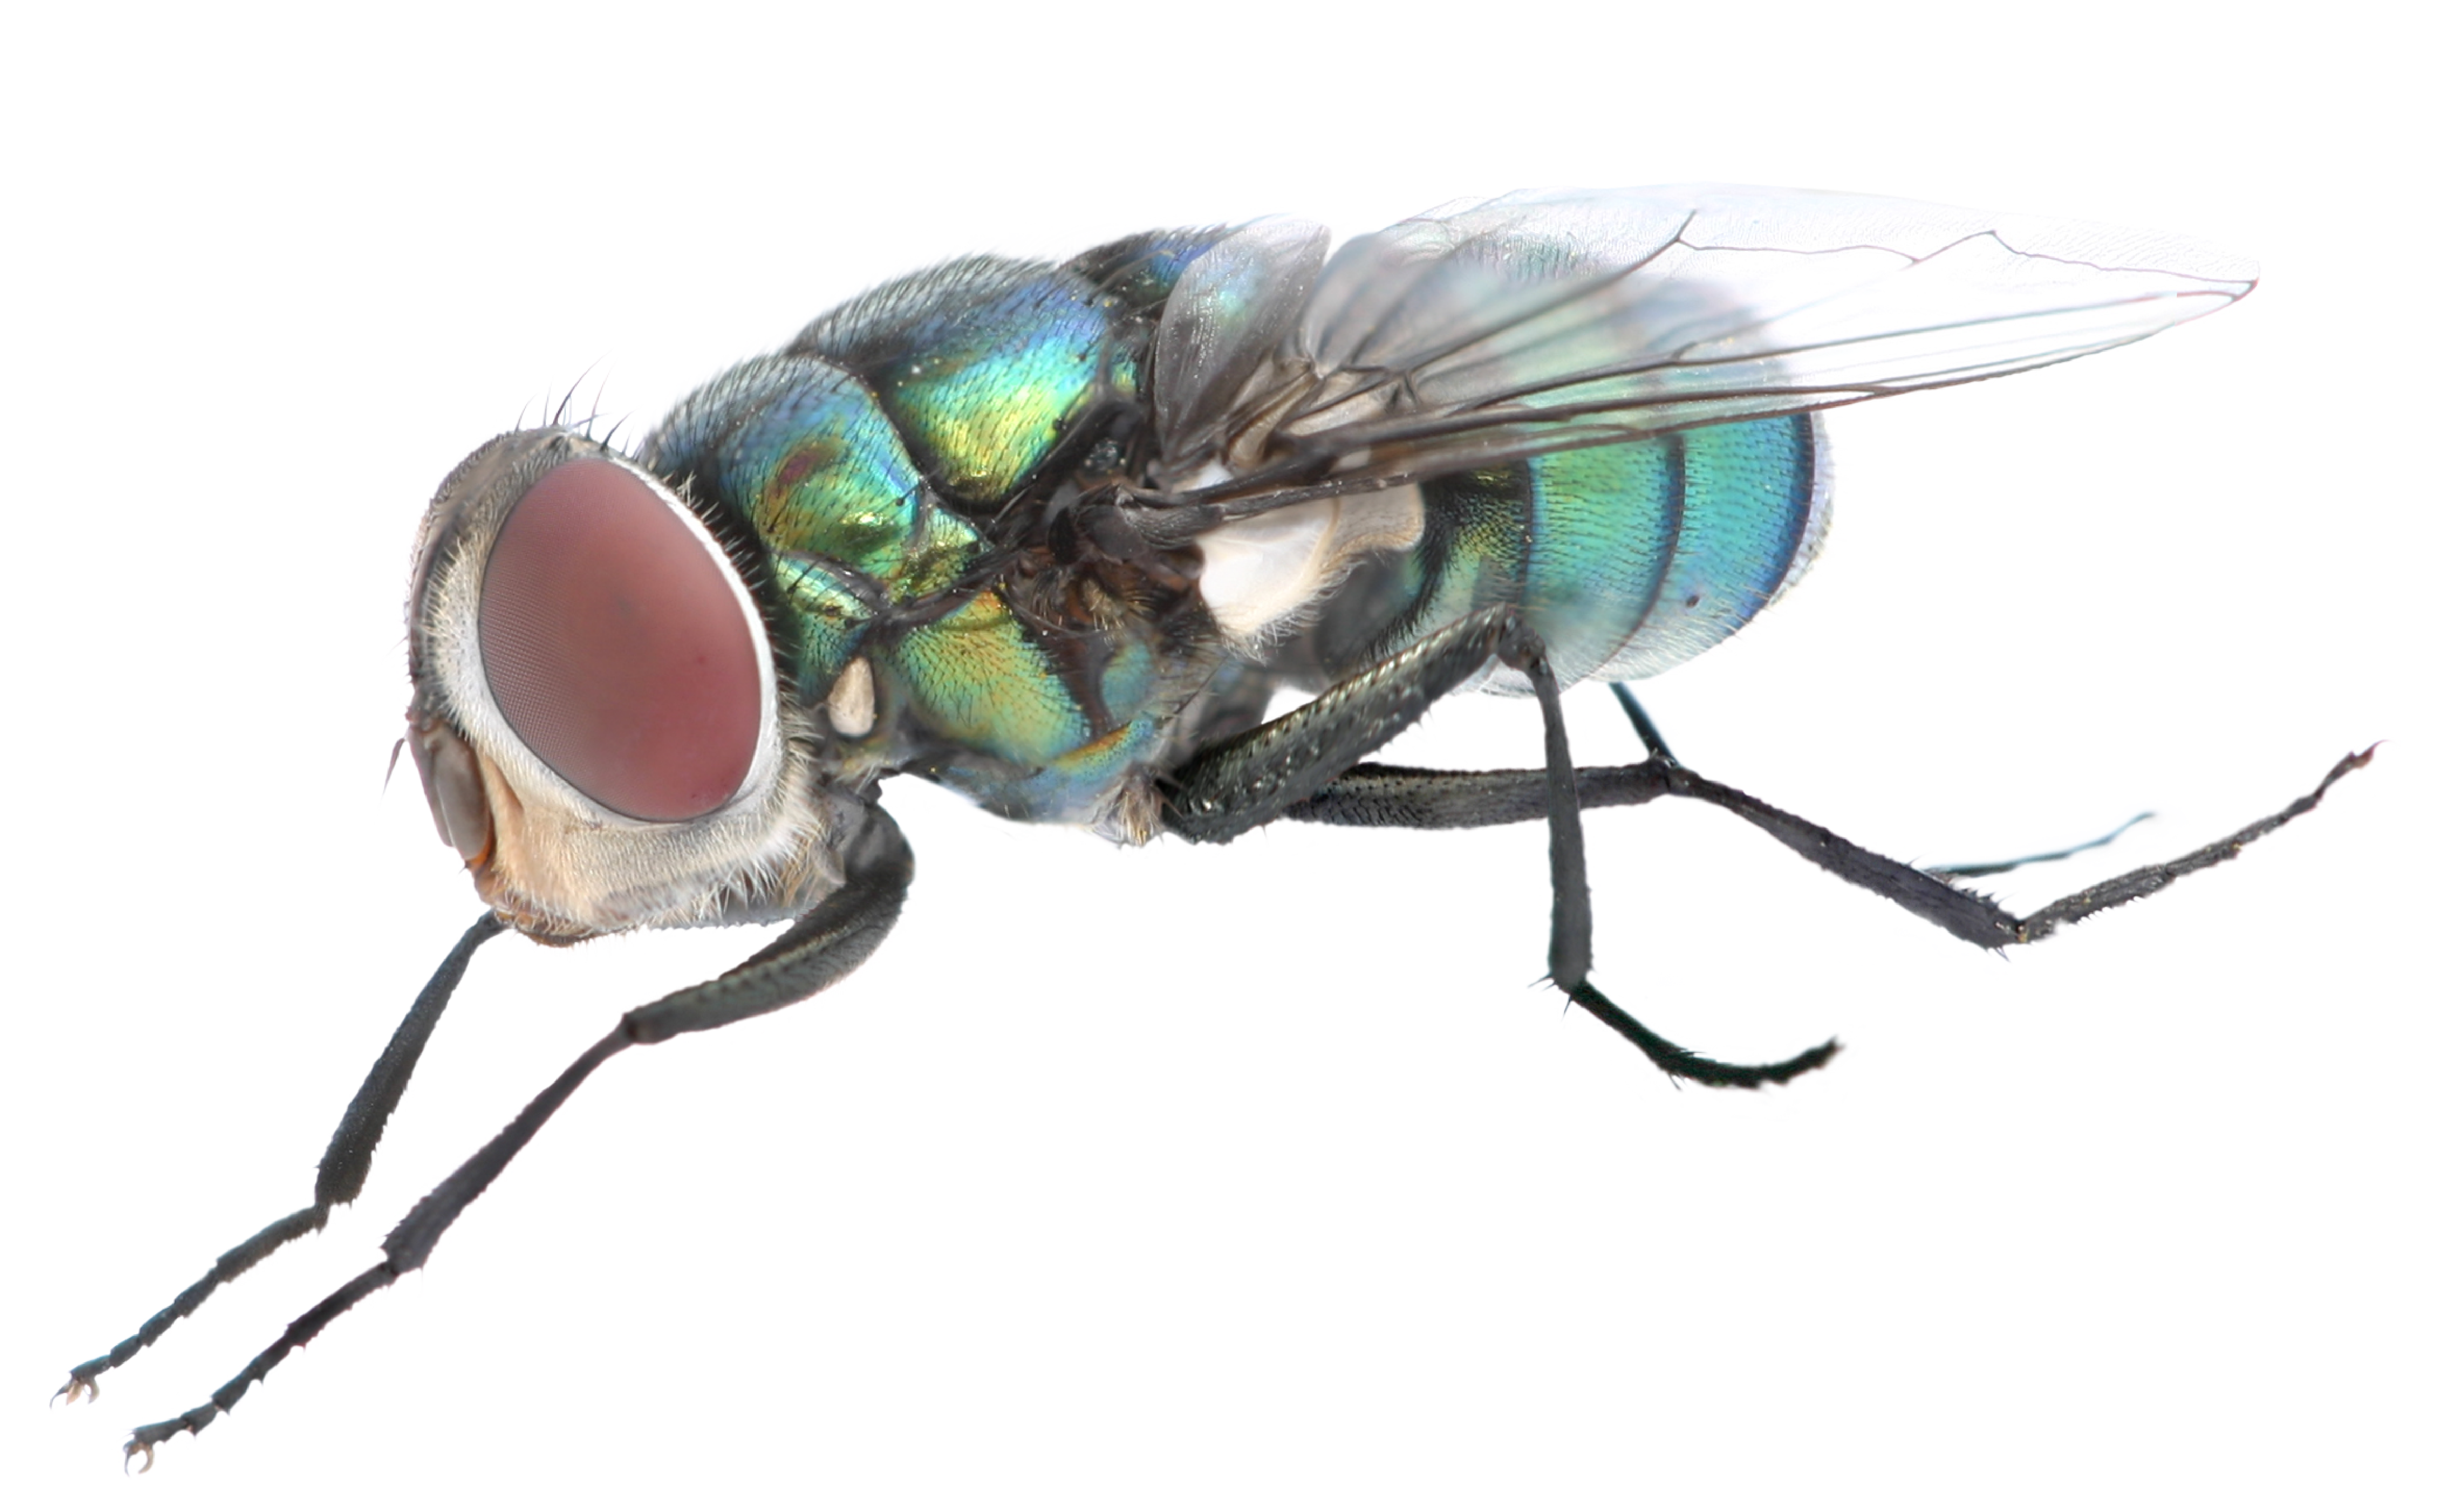 Fly clipart mosca. Png background image mart